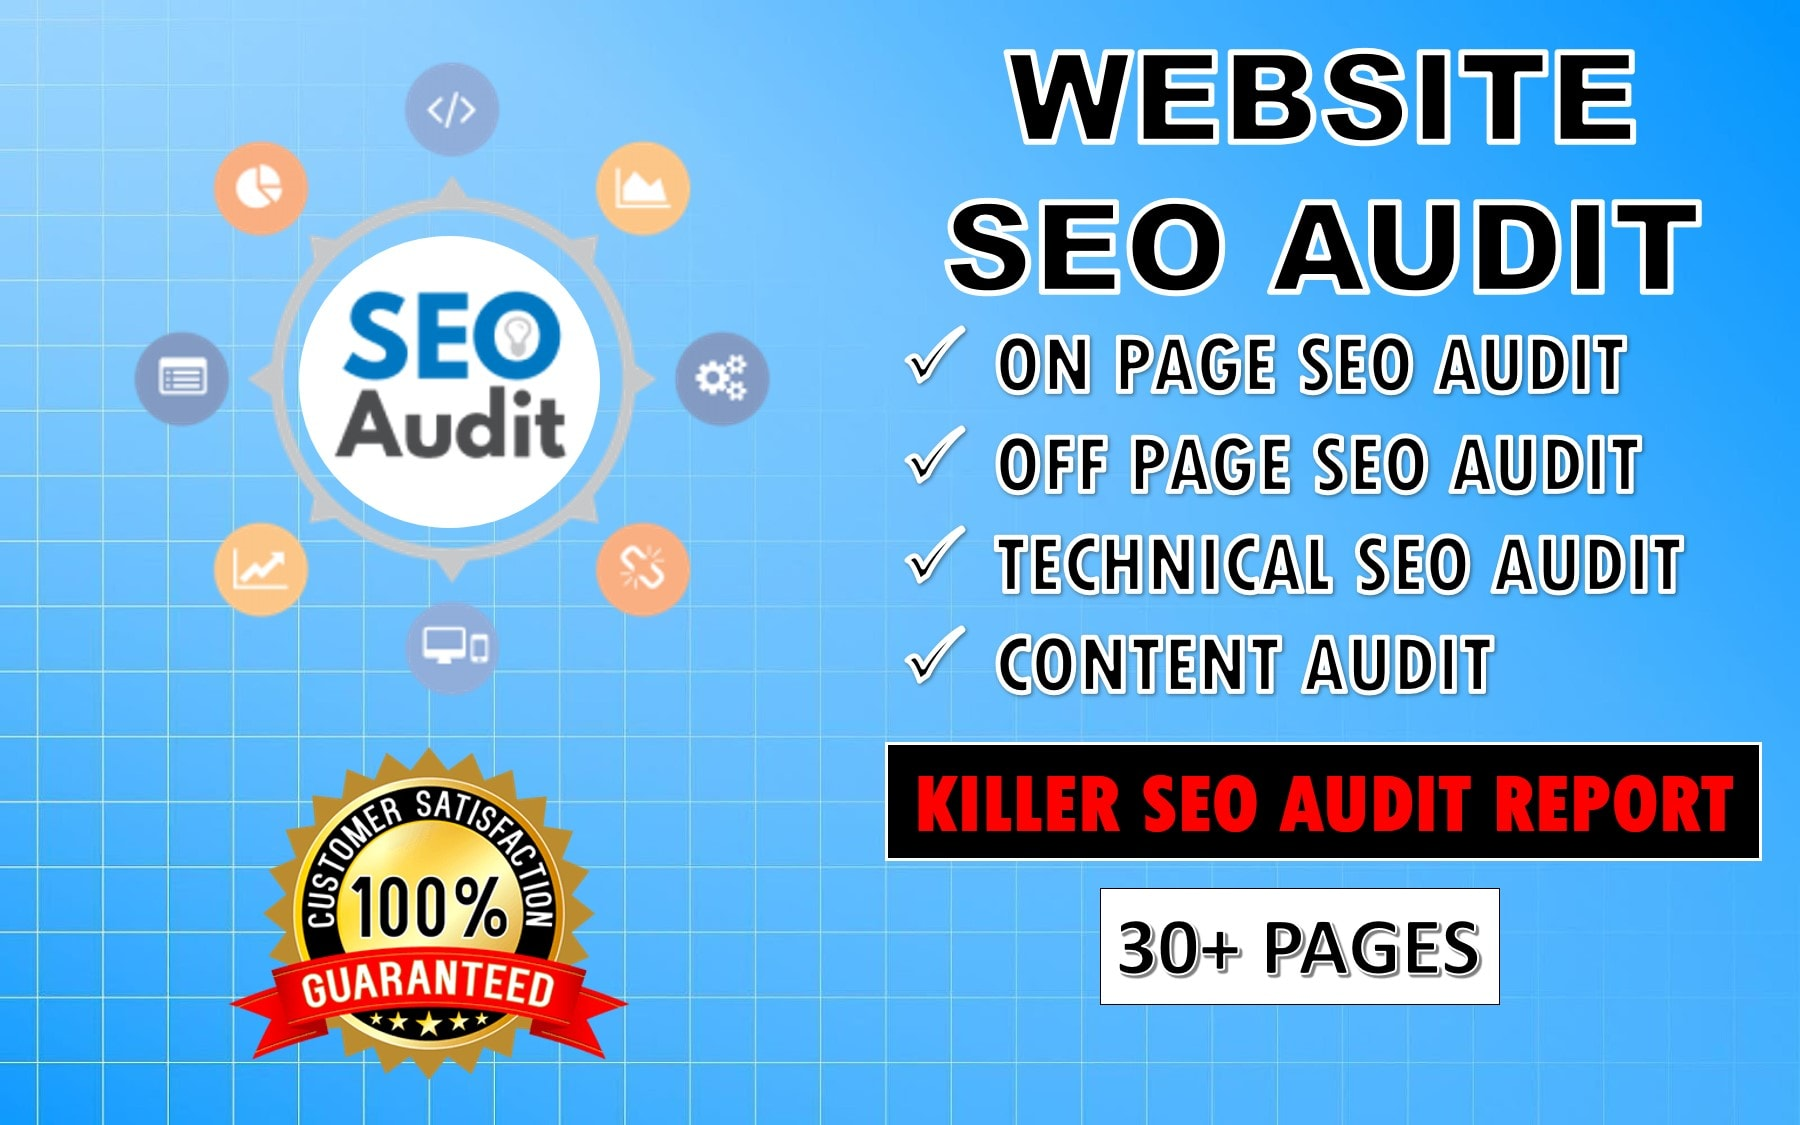 I Will Depth SEO Audit Your Website And Provide Consultant Report